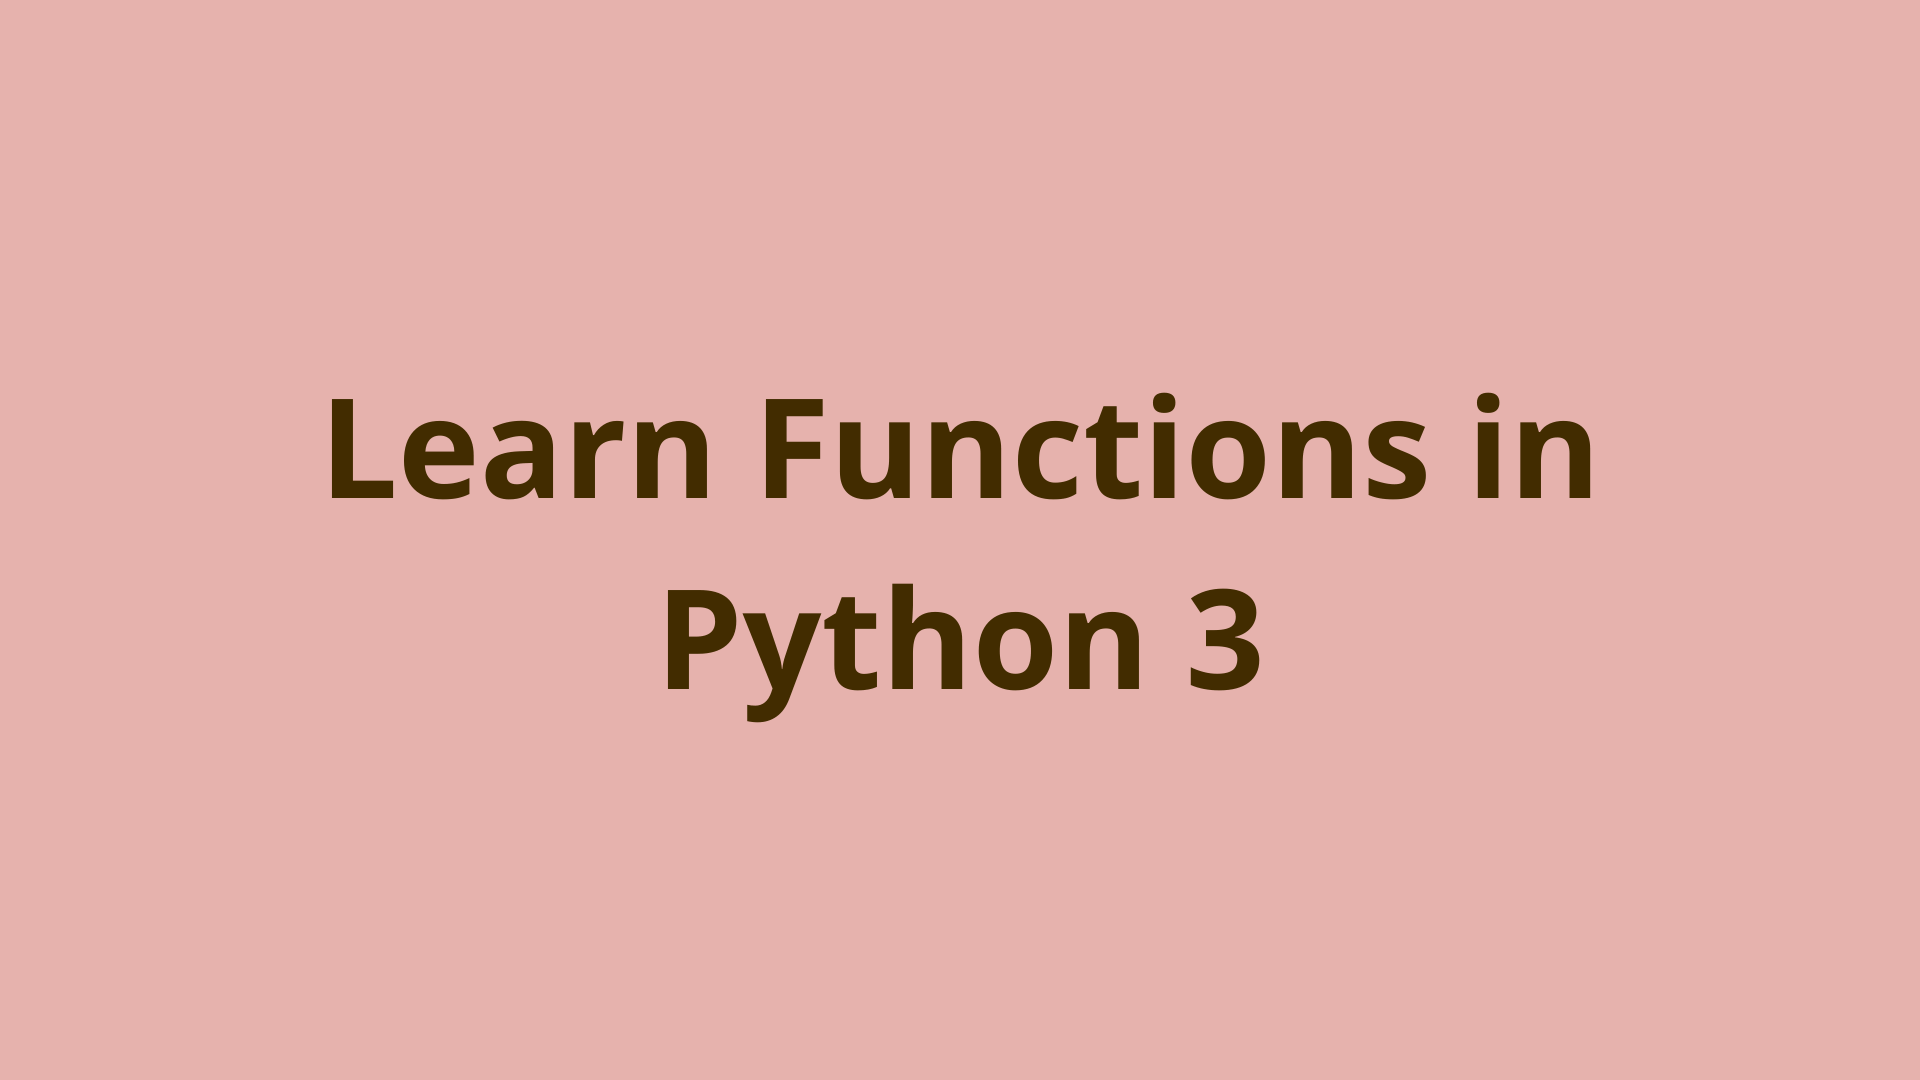 Image of Python 3 functions - learn Python programming tutorial